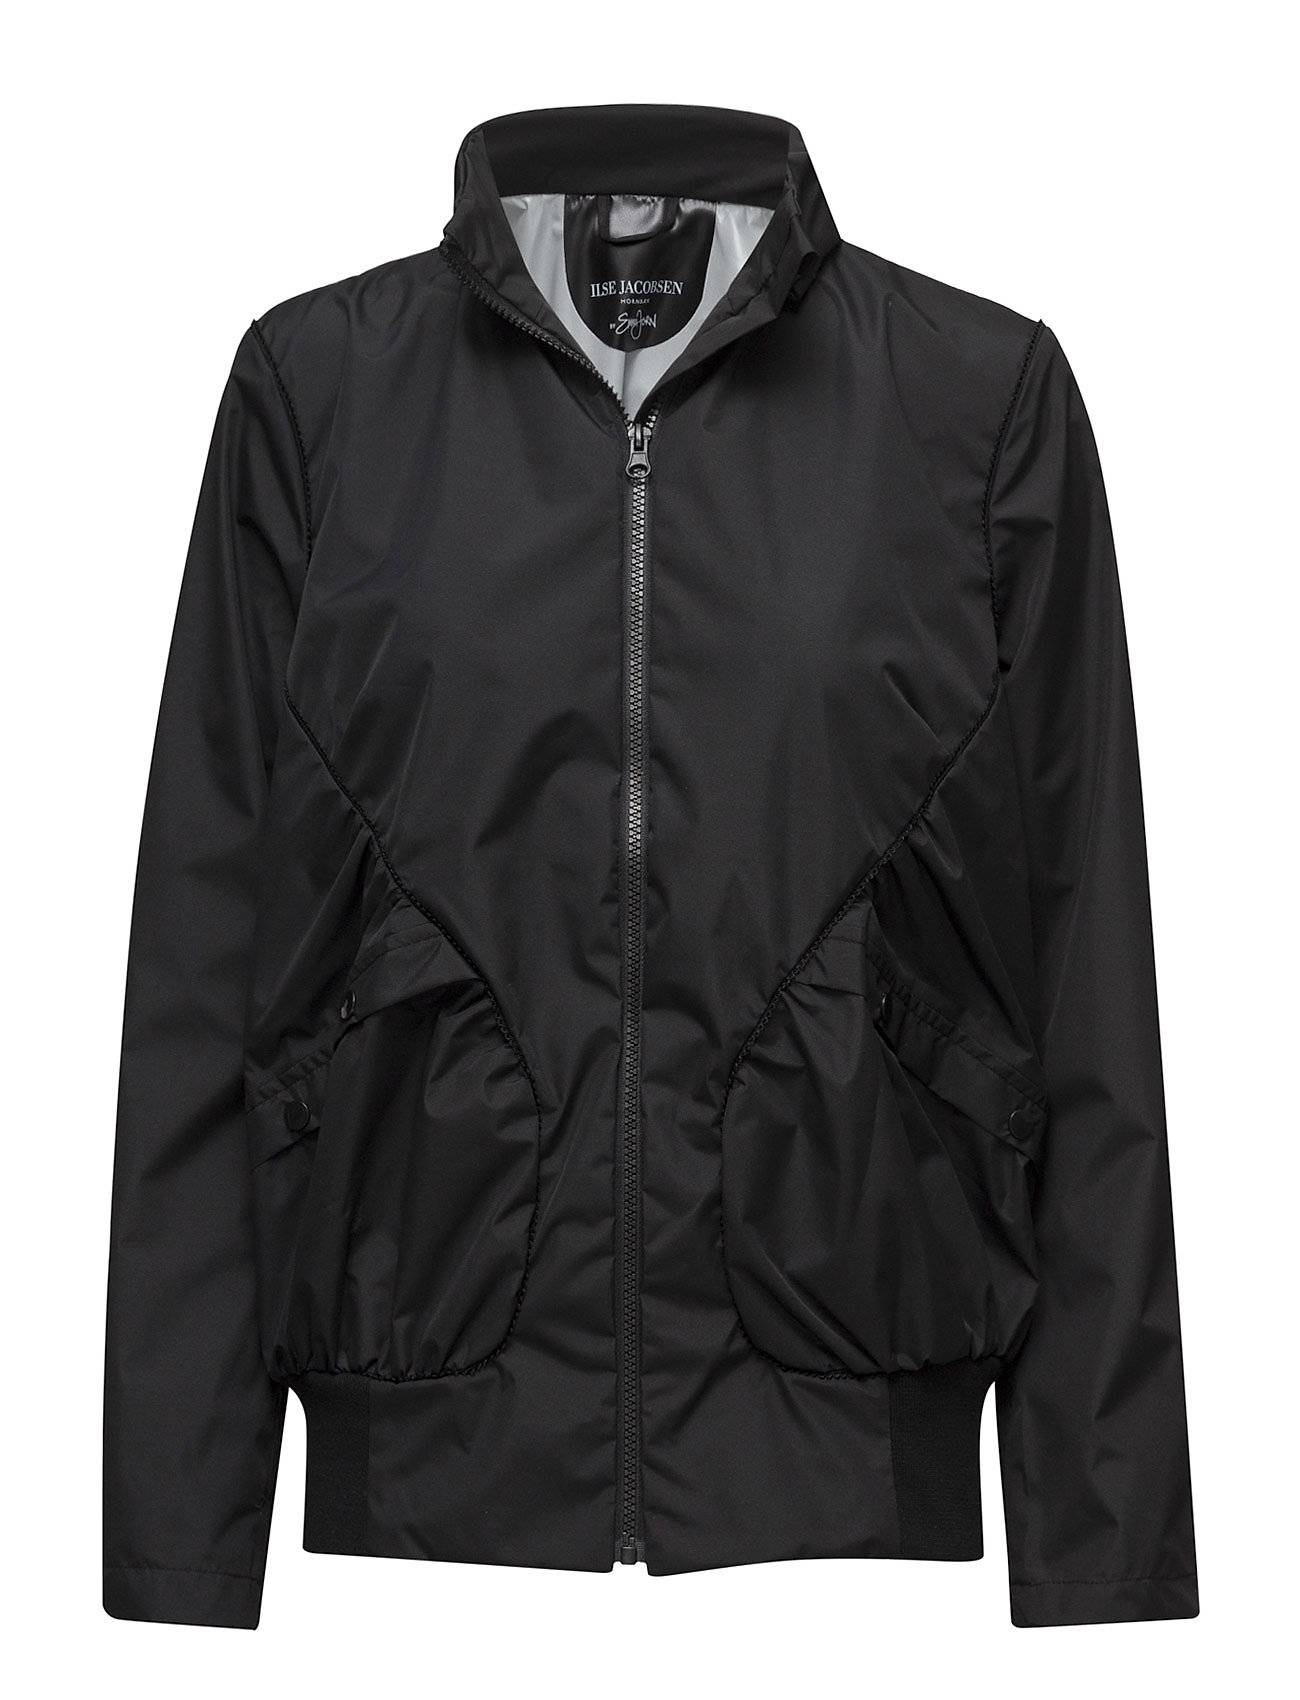 Ilse Jacobsen by Emma Jorn Womens Rain Jacket